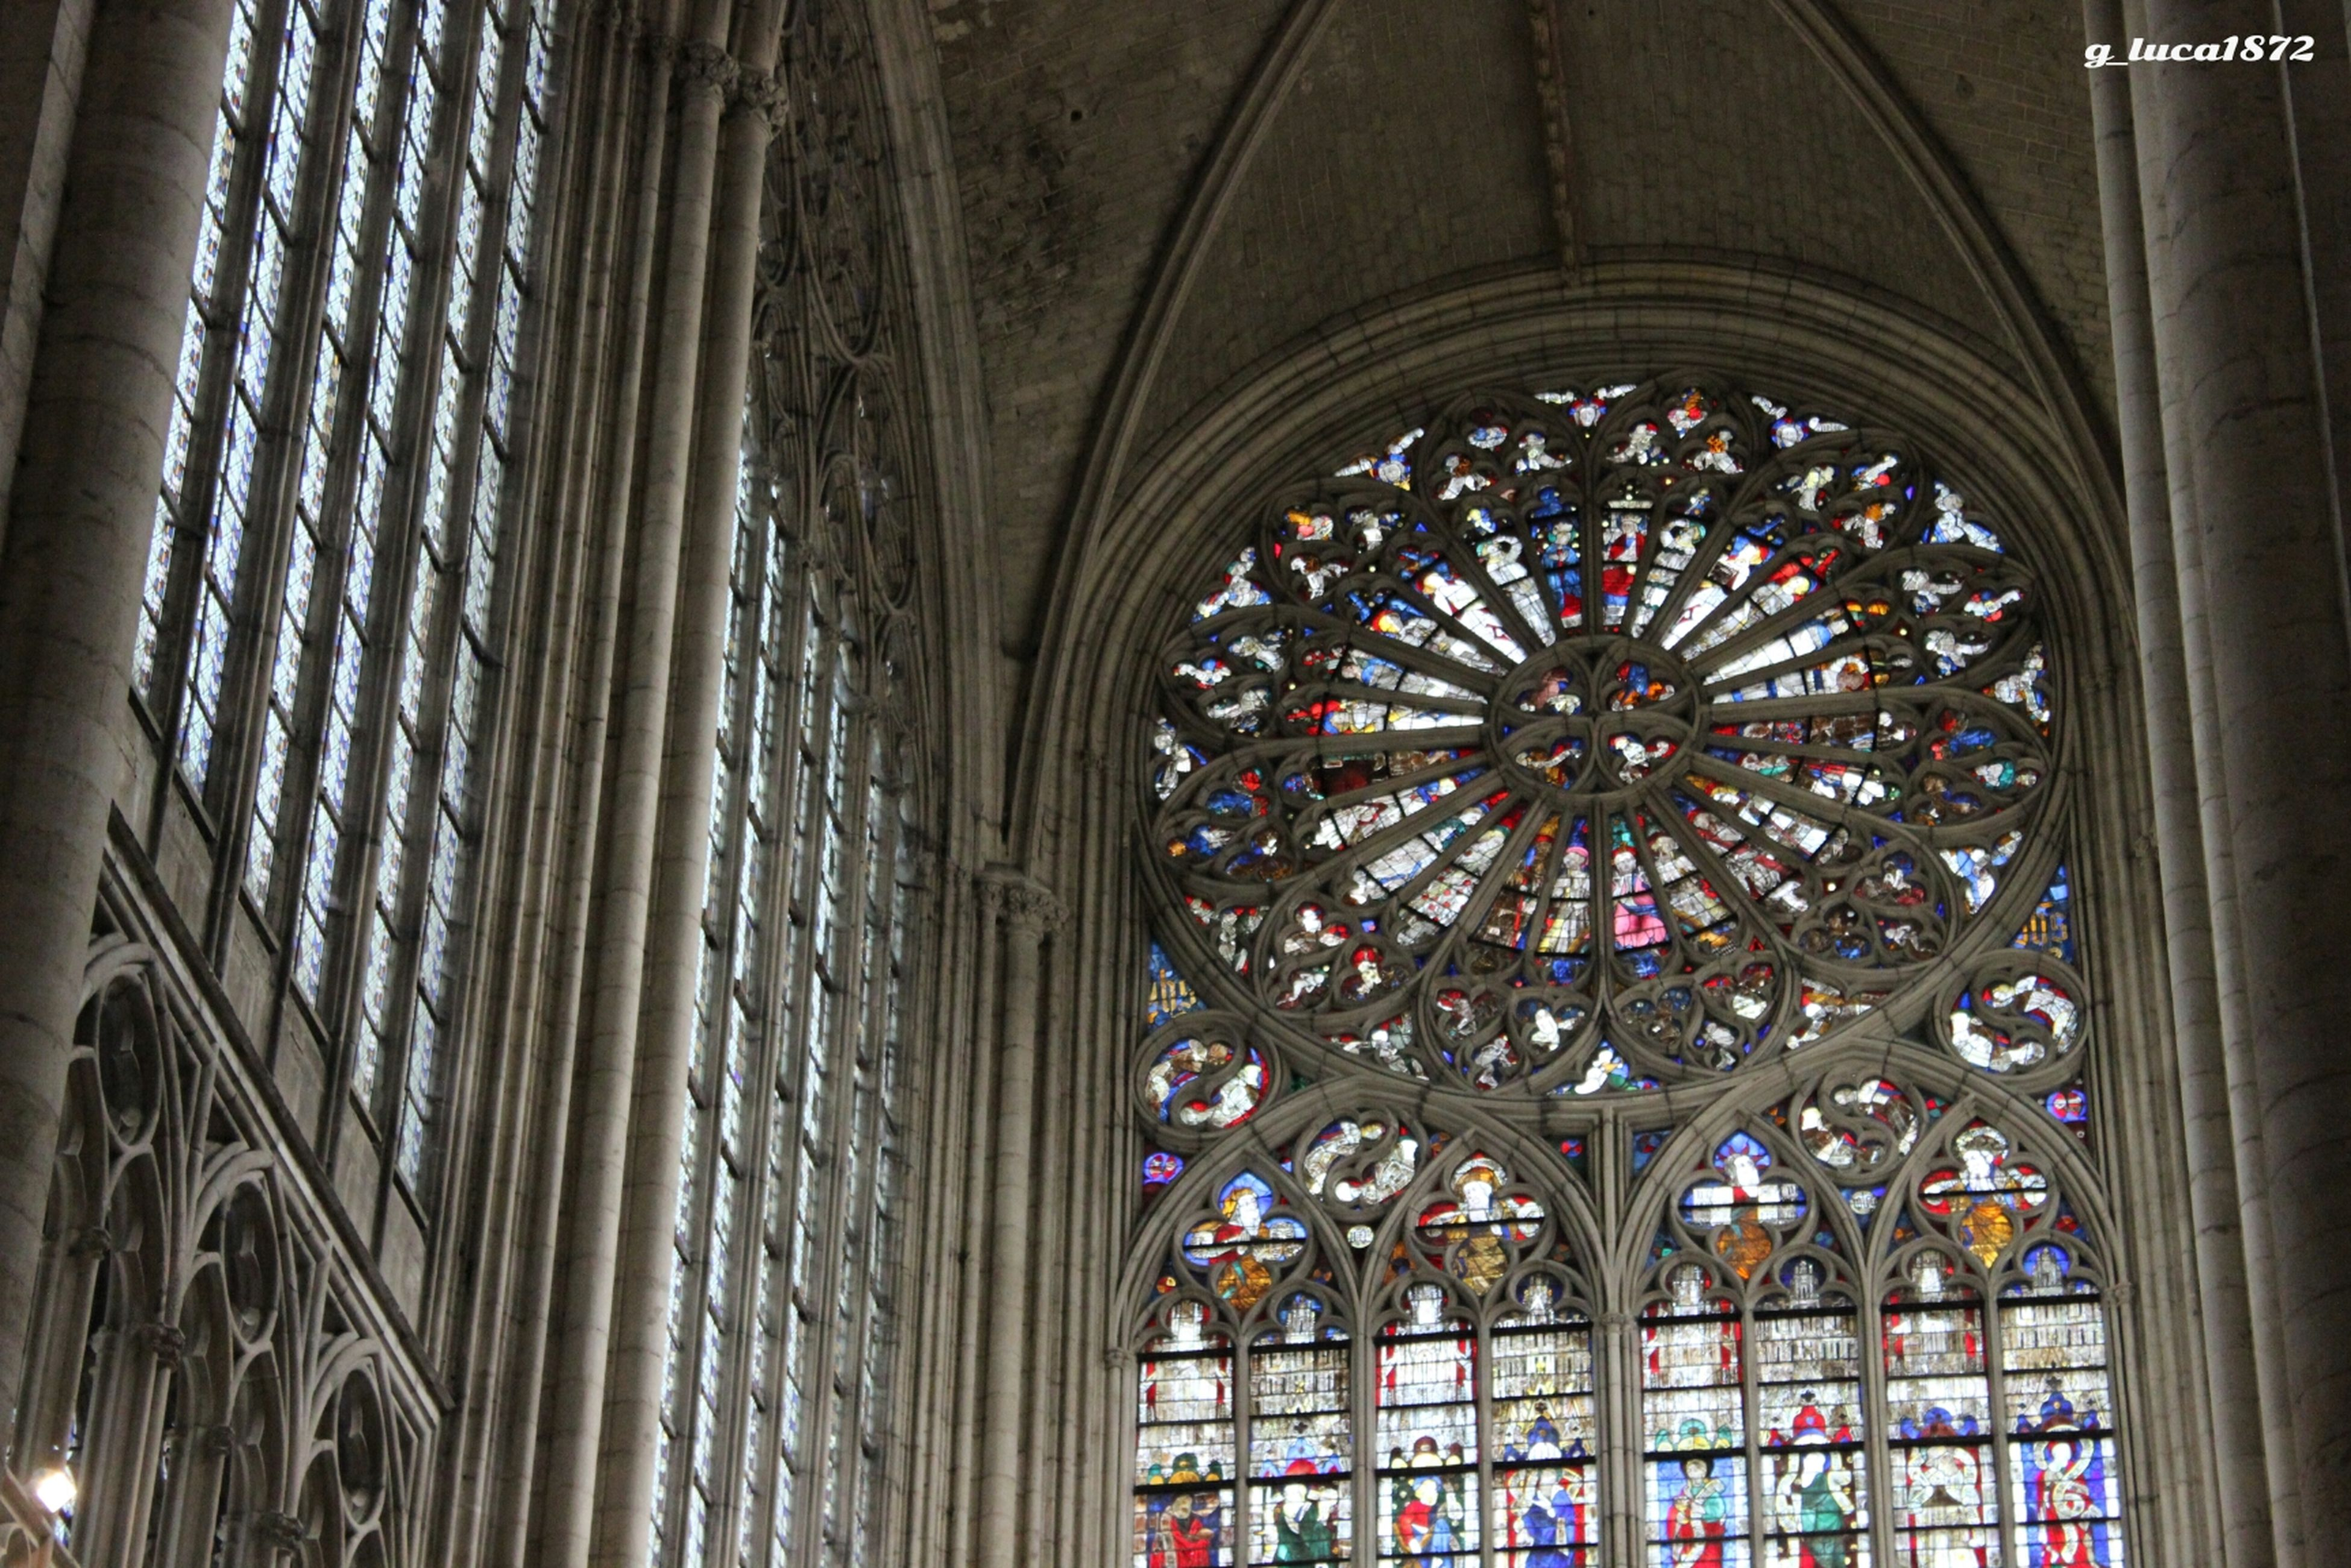 indoors, place of worship, religion, low angle view, architecture, spirituality, church, built structure, window, ornate, stained glass, ceiling, cathedral, design, pattern, architectural feature, art and craft, no people